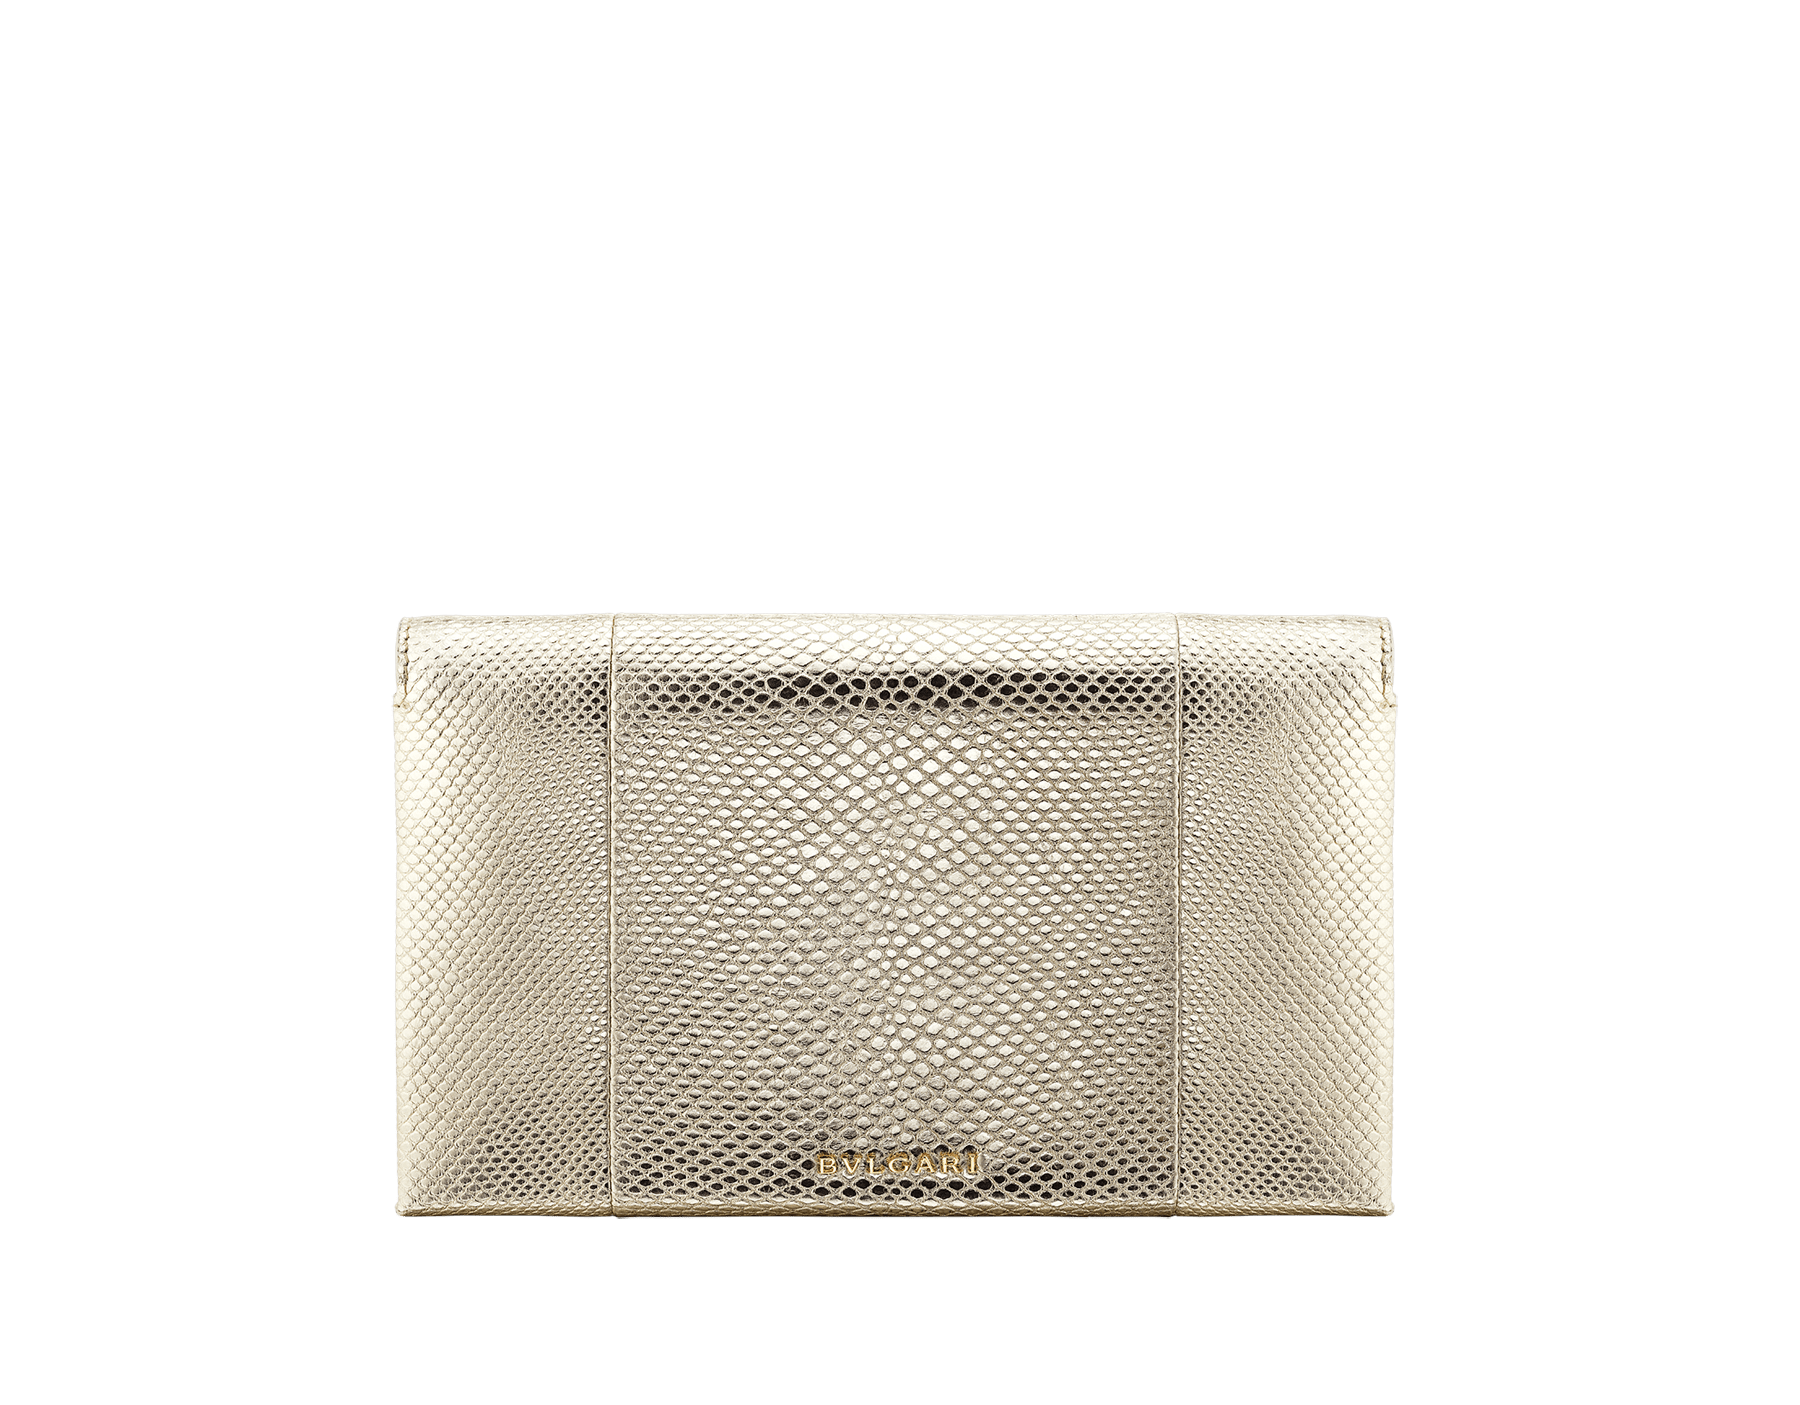 """Serpenti"" evening handle clutch bag in charcoal diamond metallic karung skin. Light gold Serpenti Seduttori handle. 526-HANDLECLUTCH image 3"